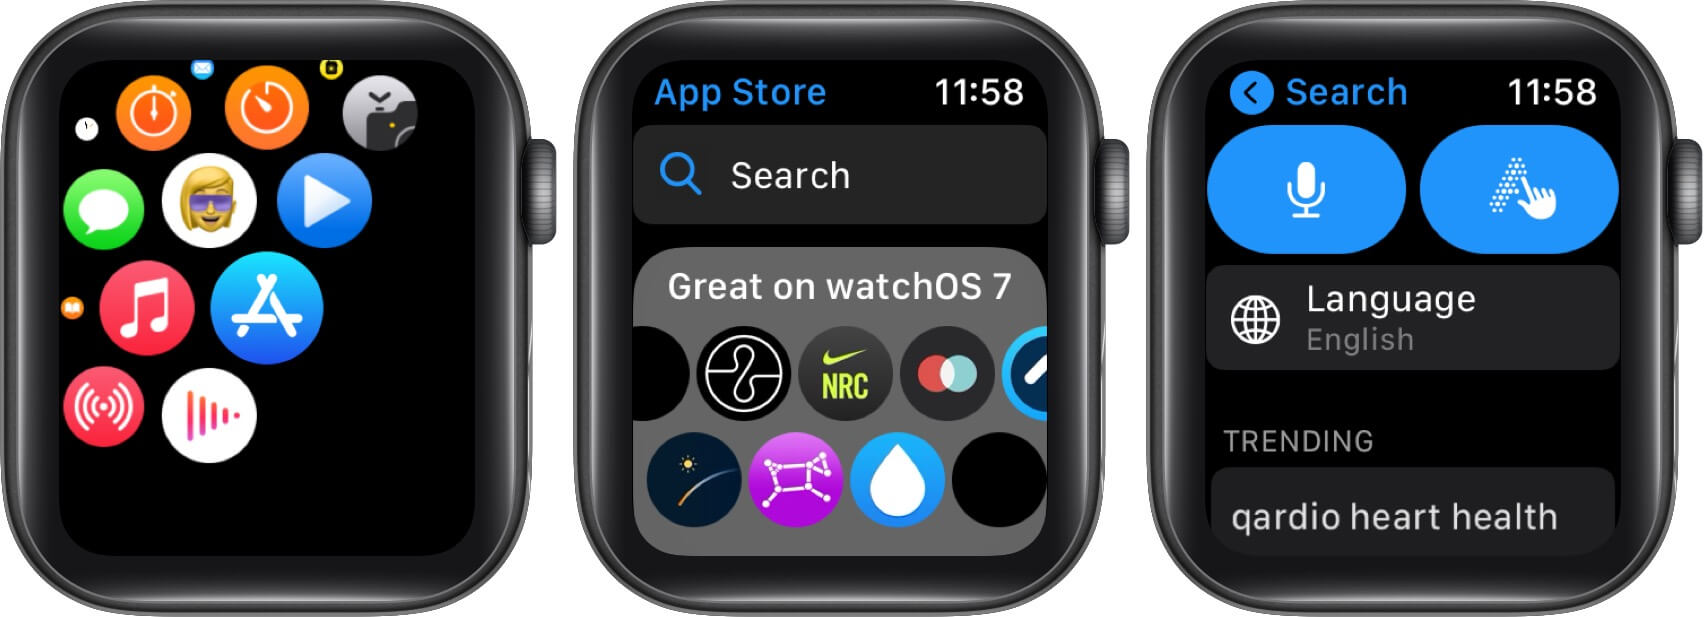 Open App Store tap Search and use Voice or Scribble on Apple Watch